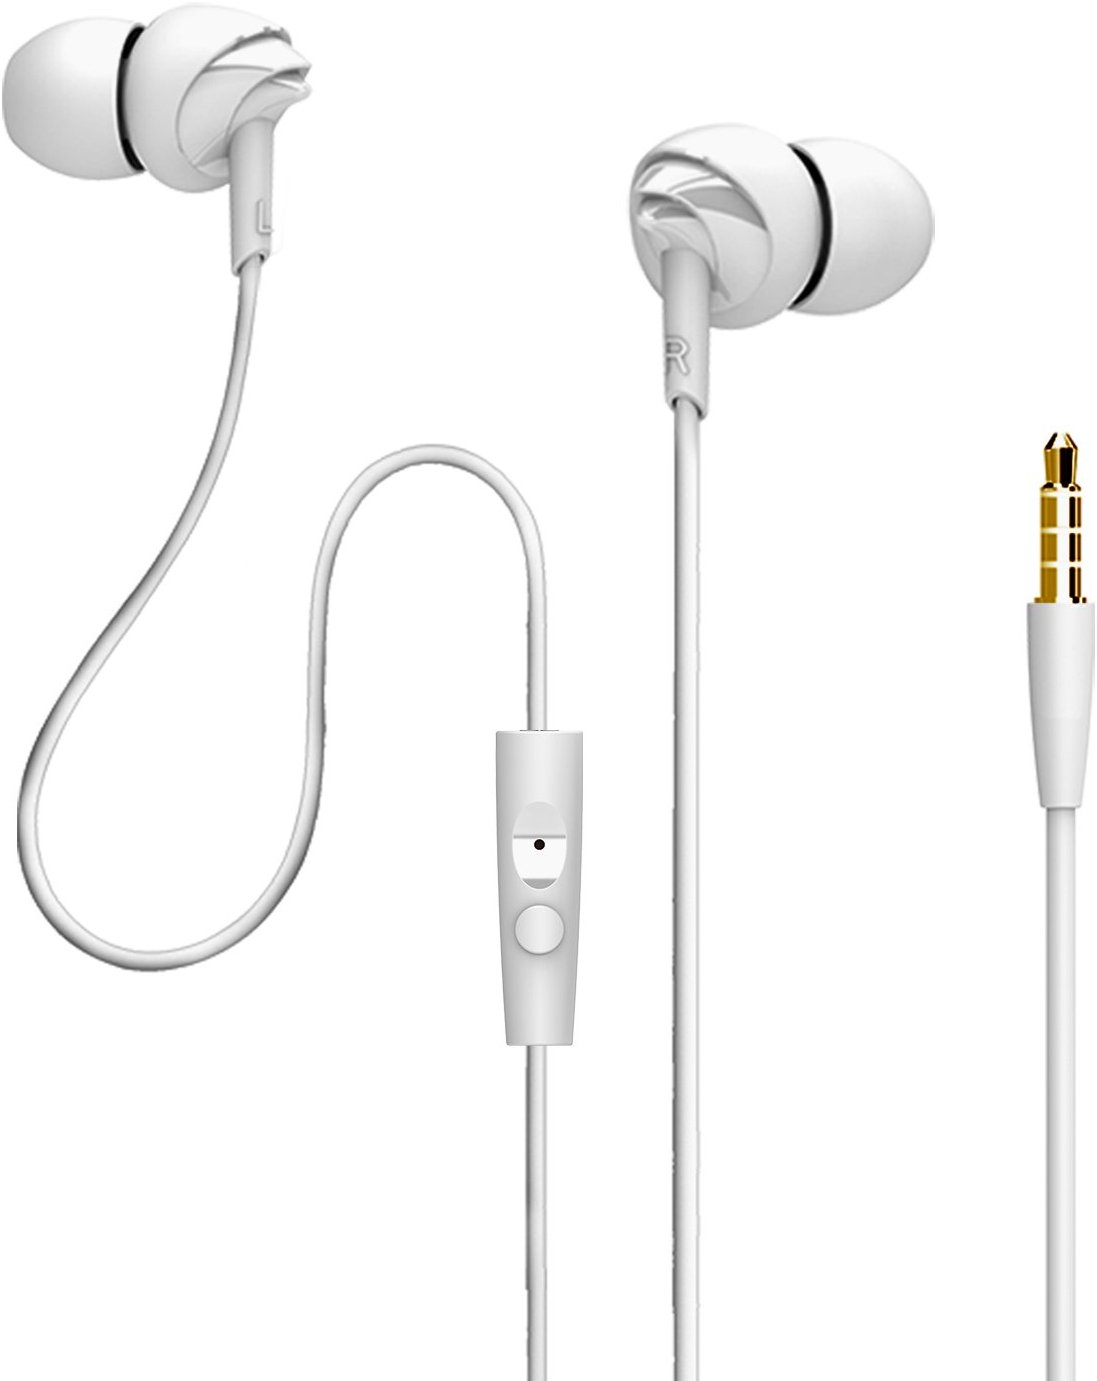 Top 10 best earphones under Rs 500, 10 earphones under 500, Best earphones under 500